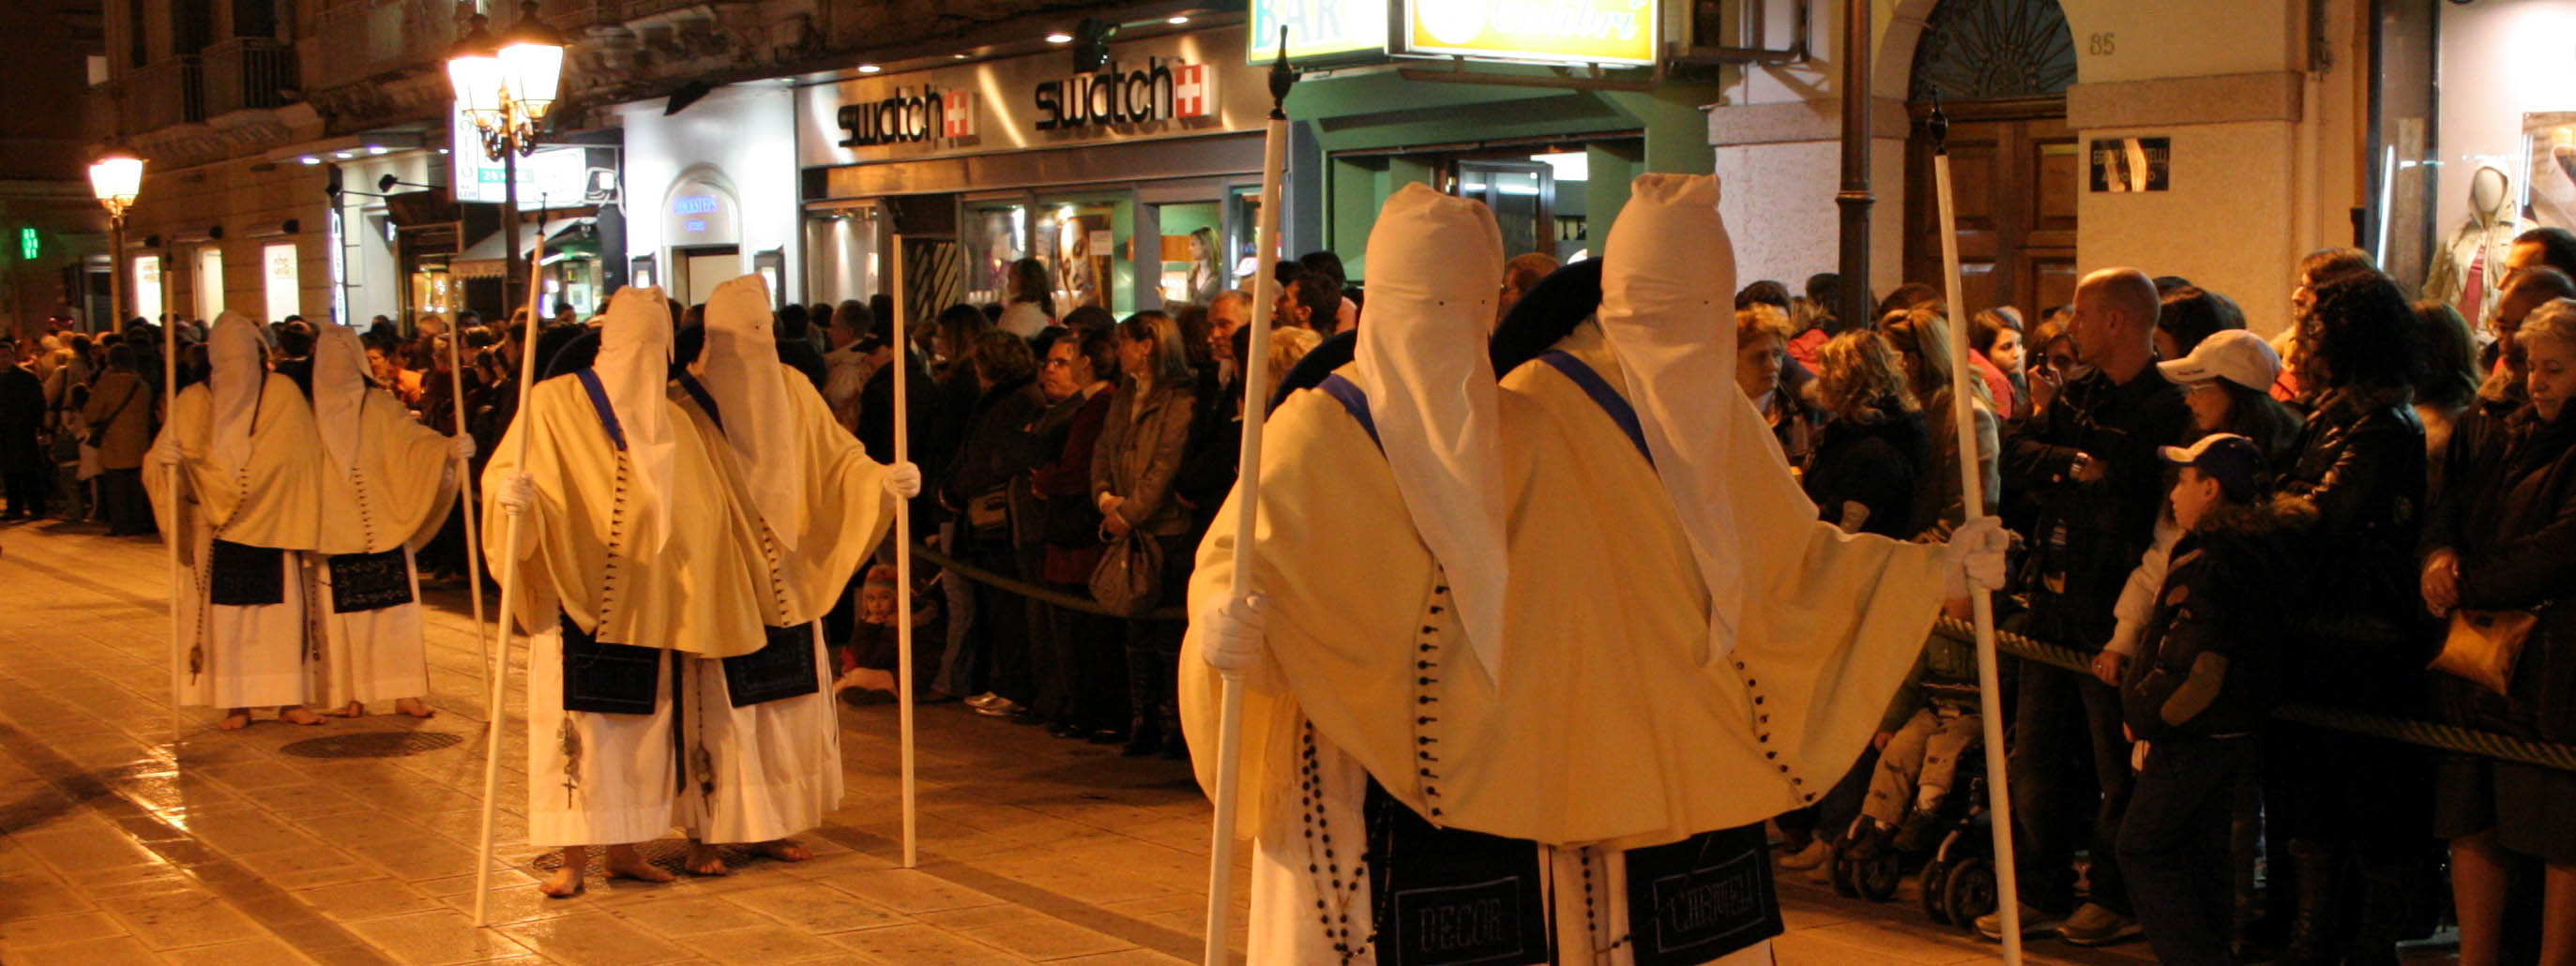 Photo of Easter procession in Taranto